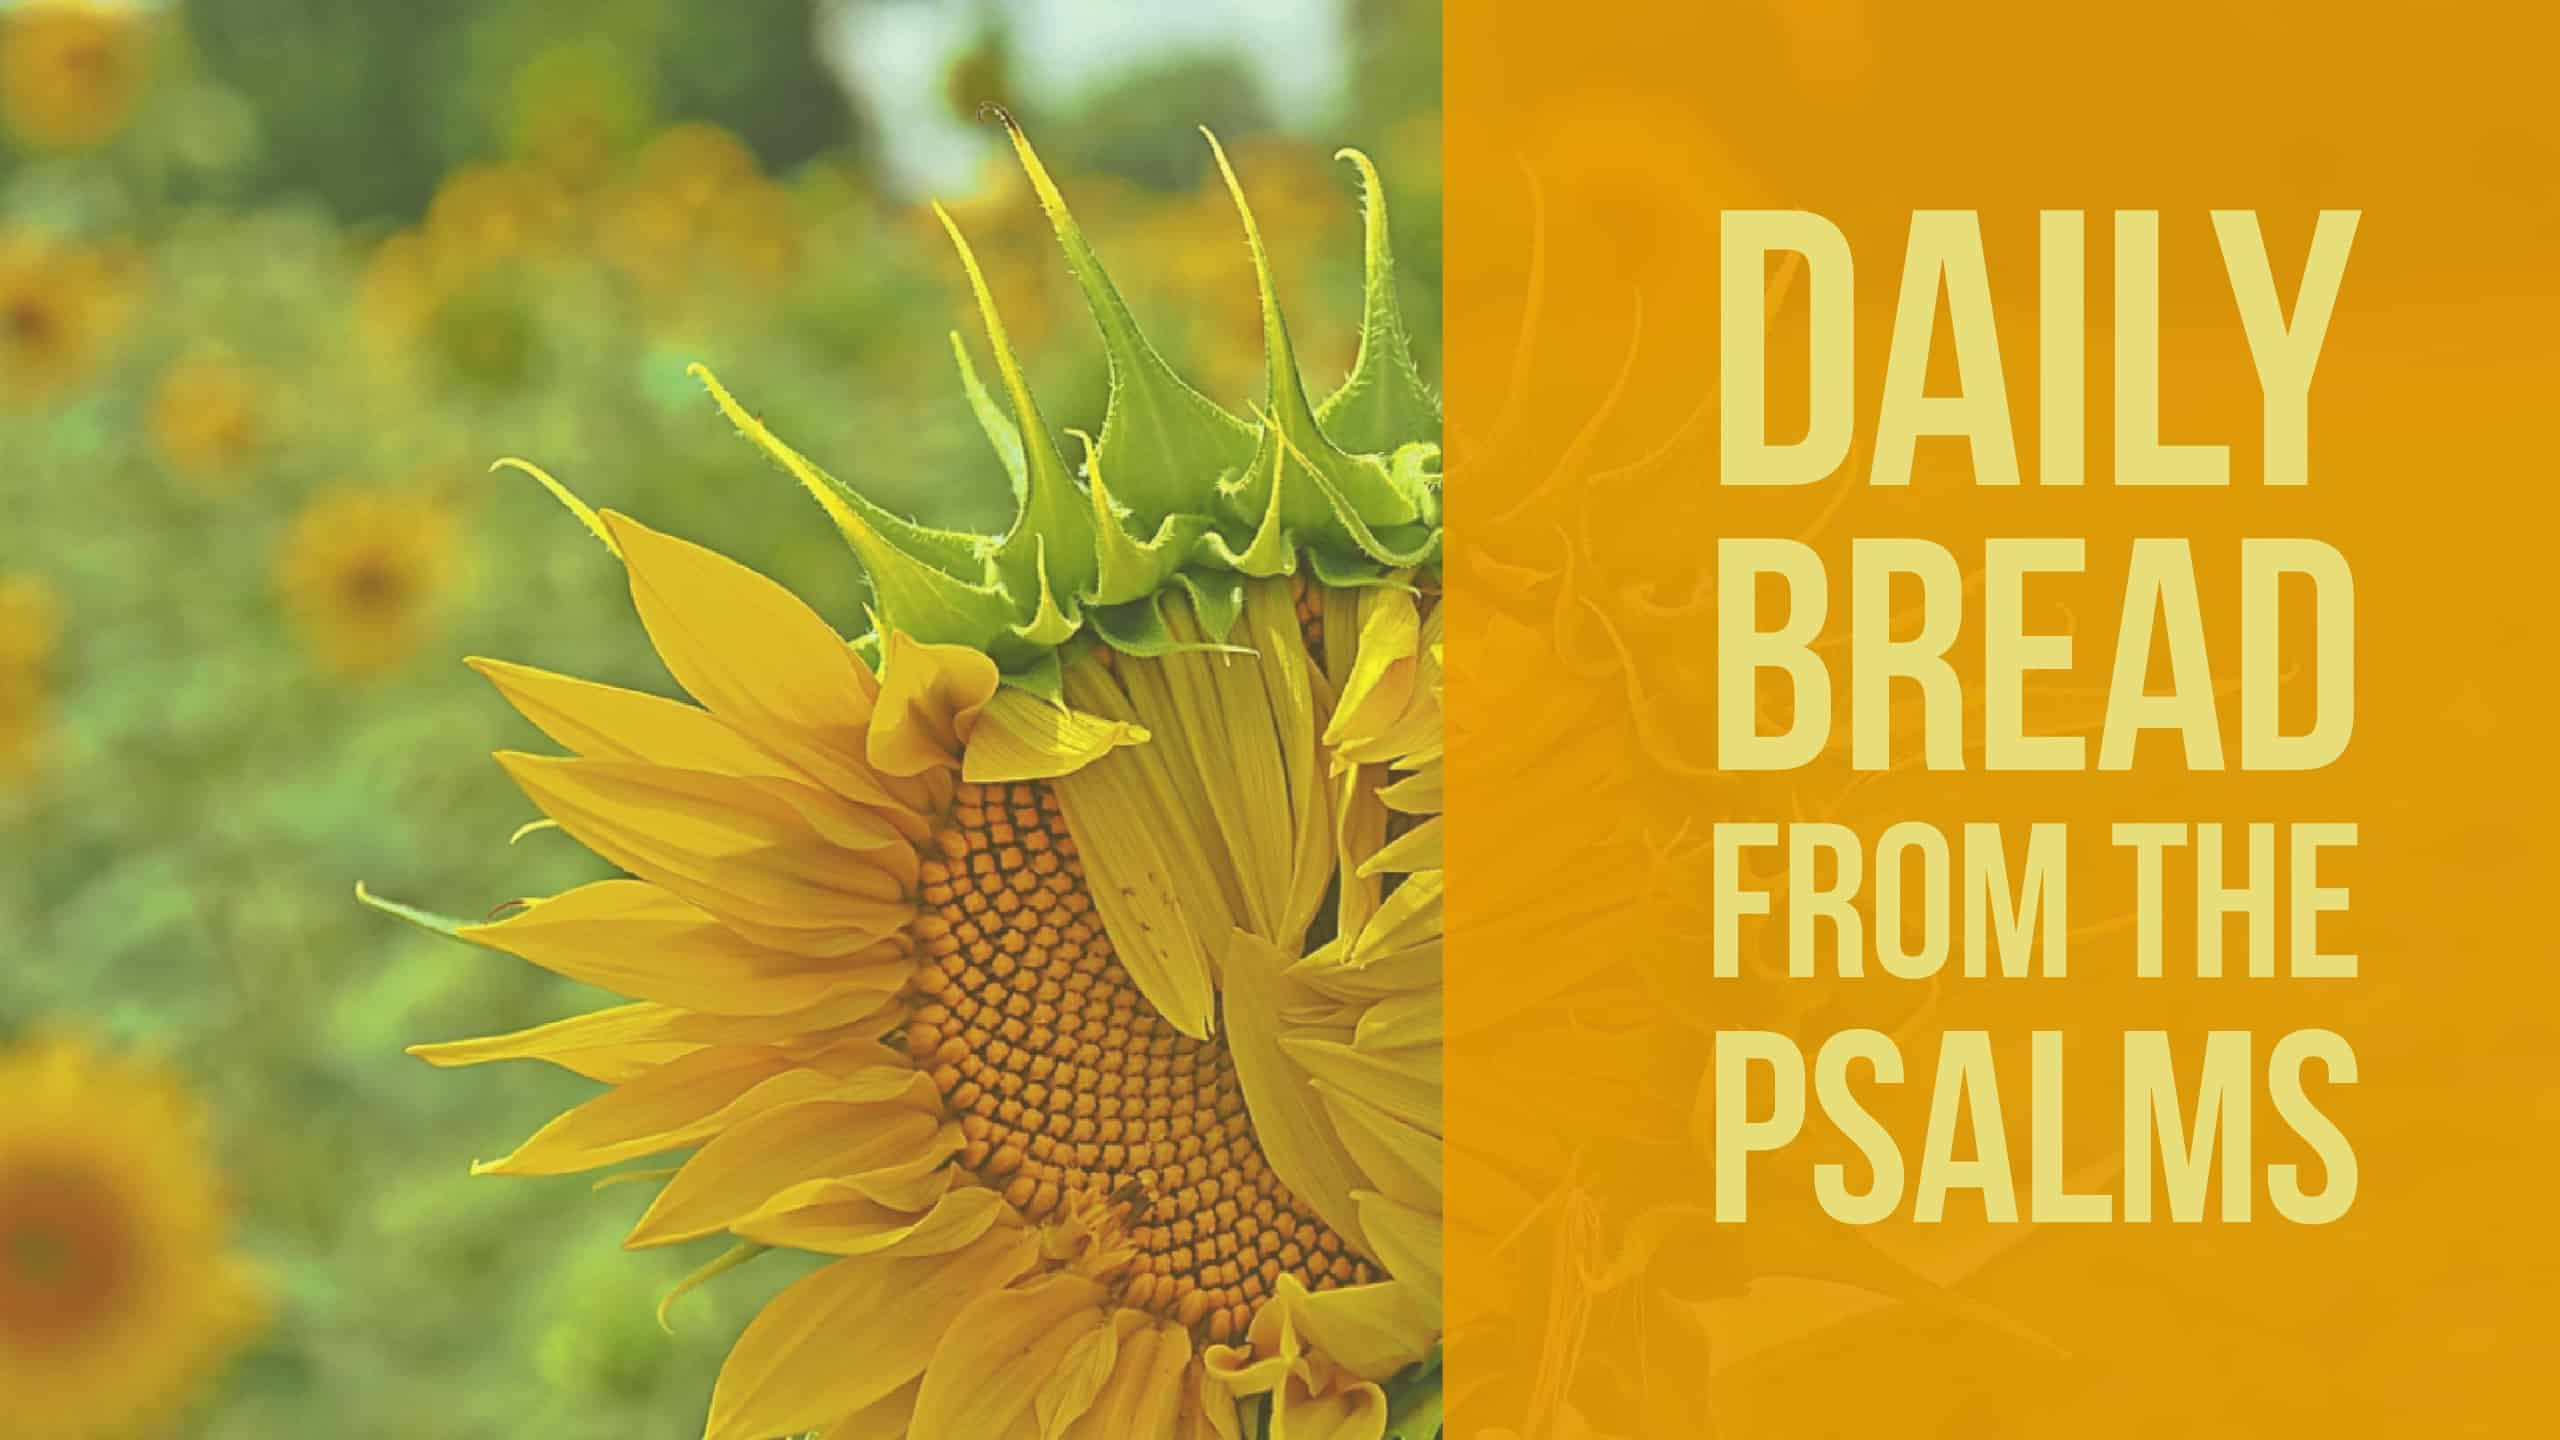 Daily Bread from the Psalms (Psalm 12) - Fields of Daisies